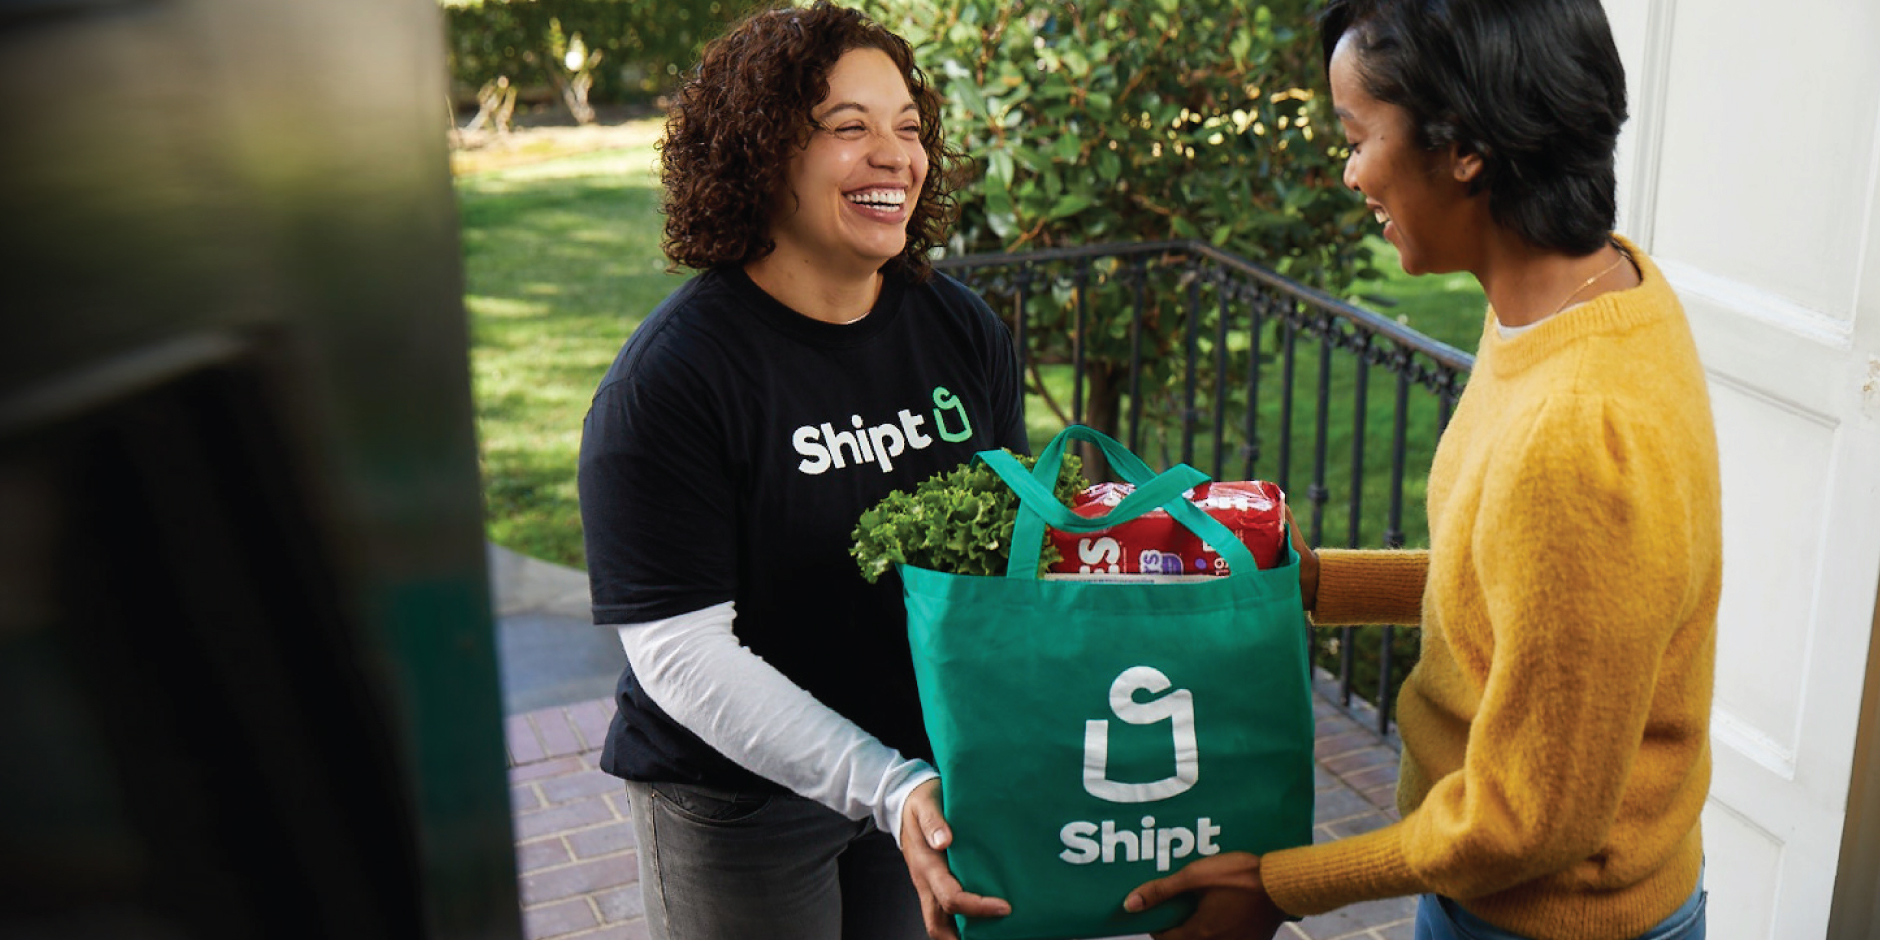 A Shipt Shopper in a black t-shirt smiles as she delivers a green bag to a guest on her doorstep